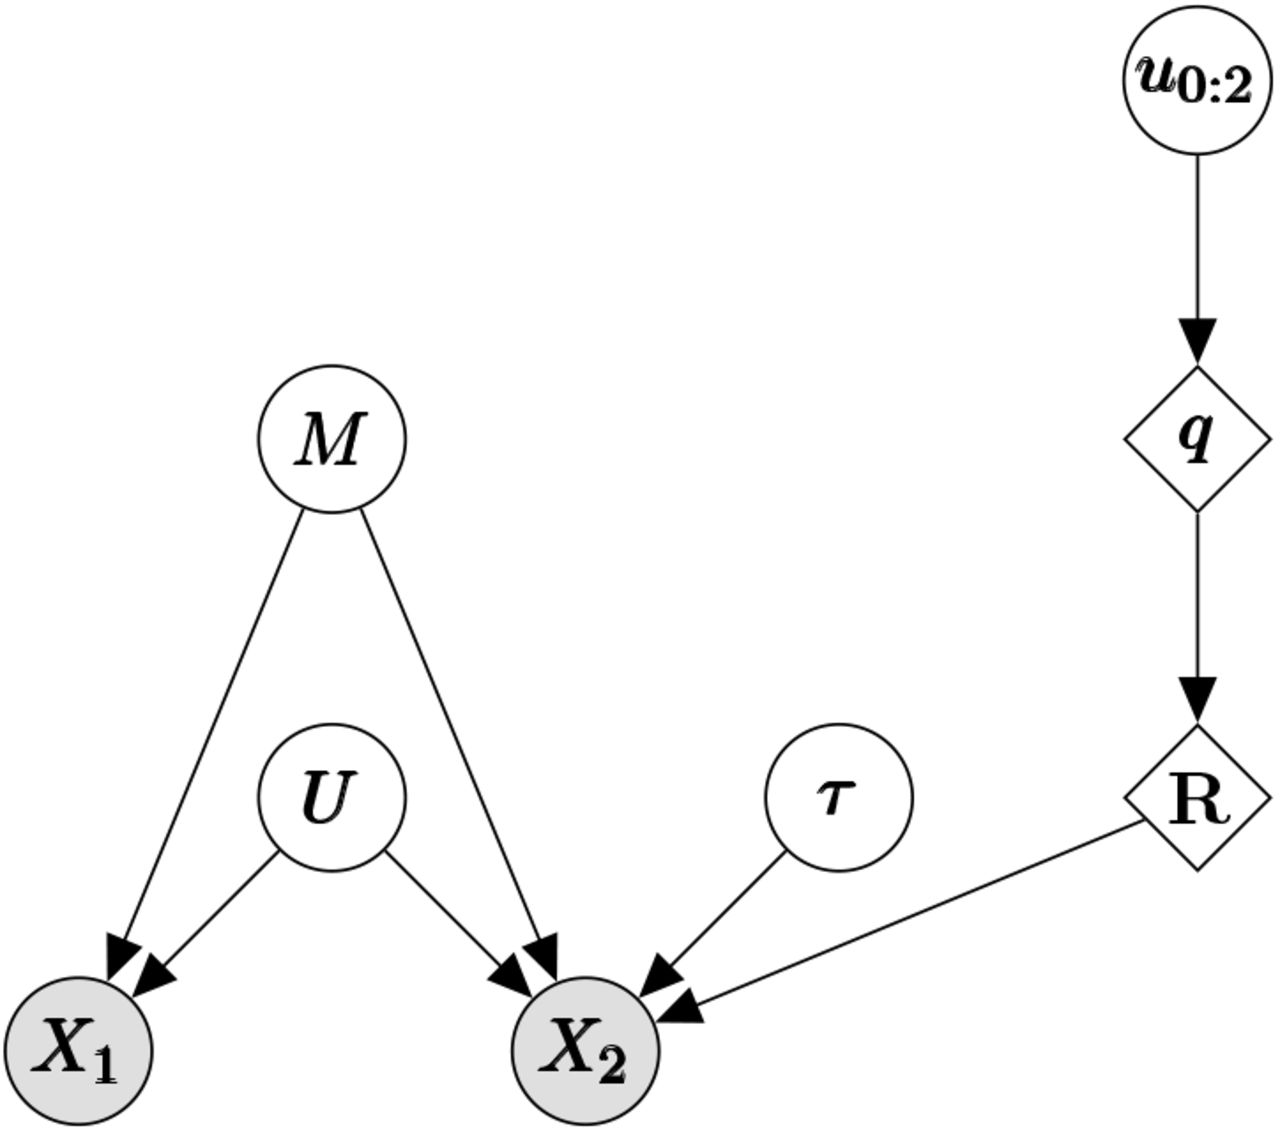 A Probabilistic Programming Approach to Protein Structure